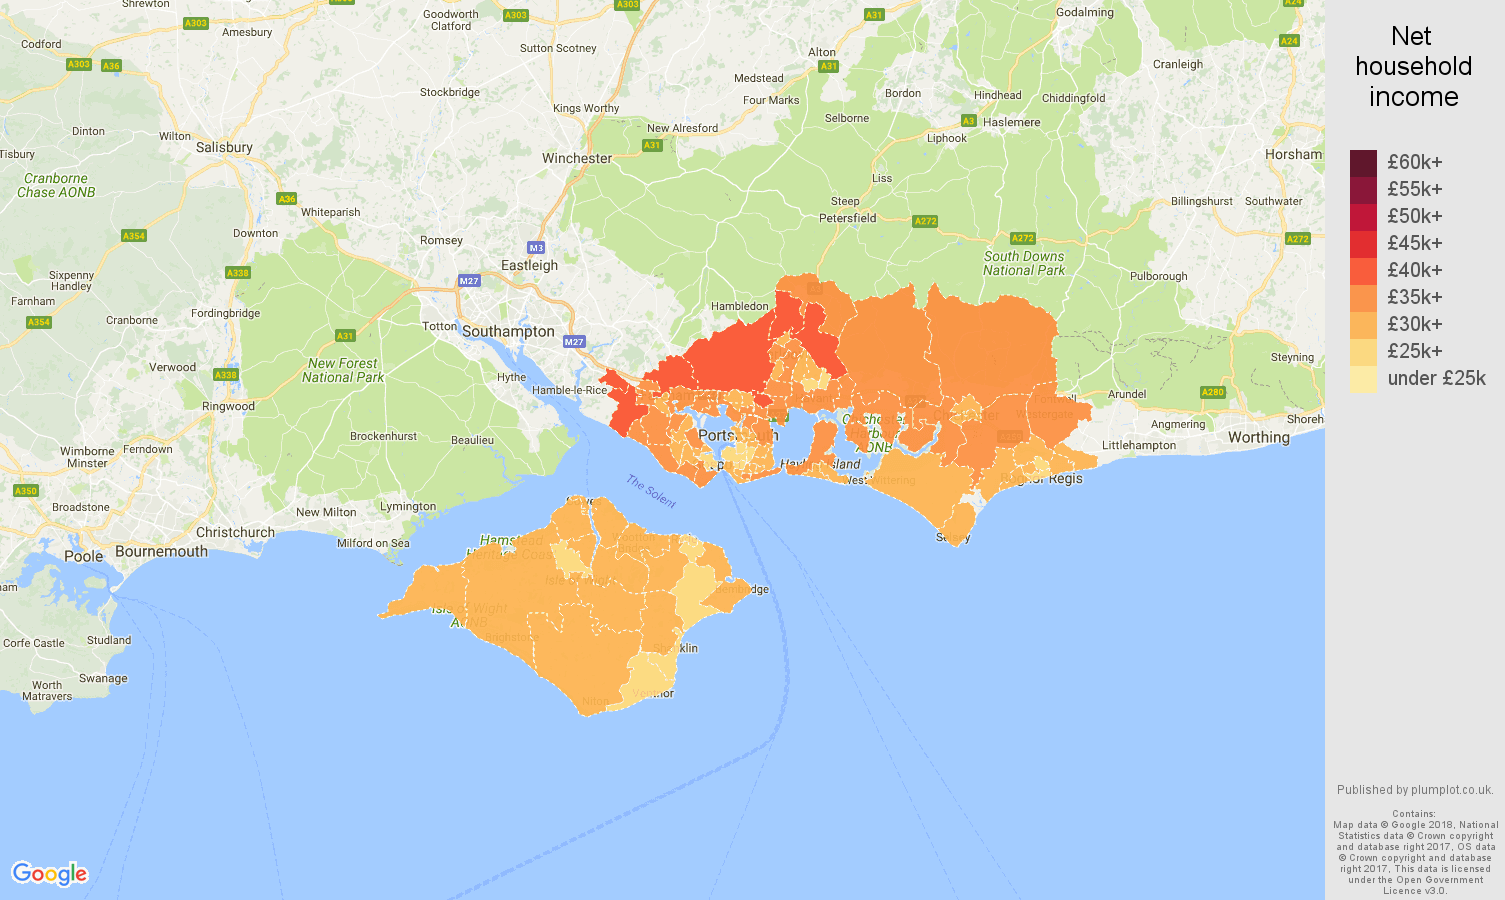 Map Of England Portsmouth.Portsmouth Average Salary Household Income And Unemployment Rates